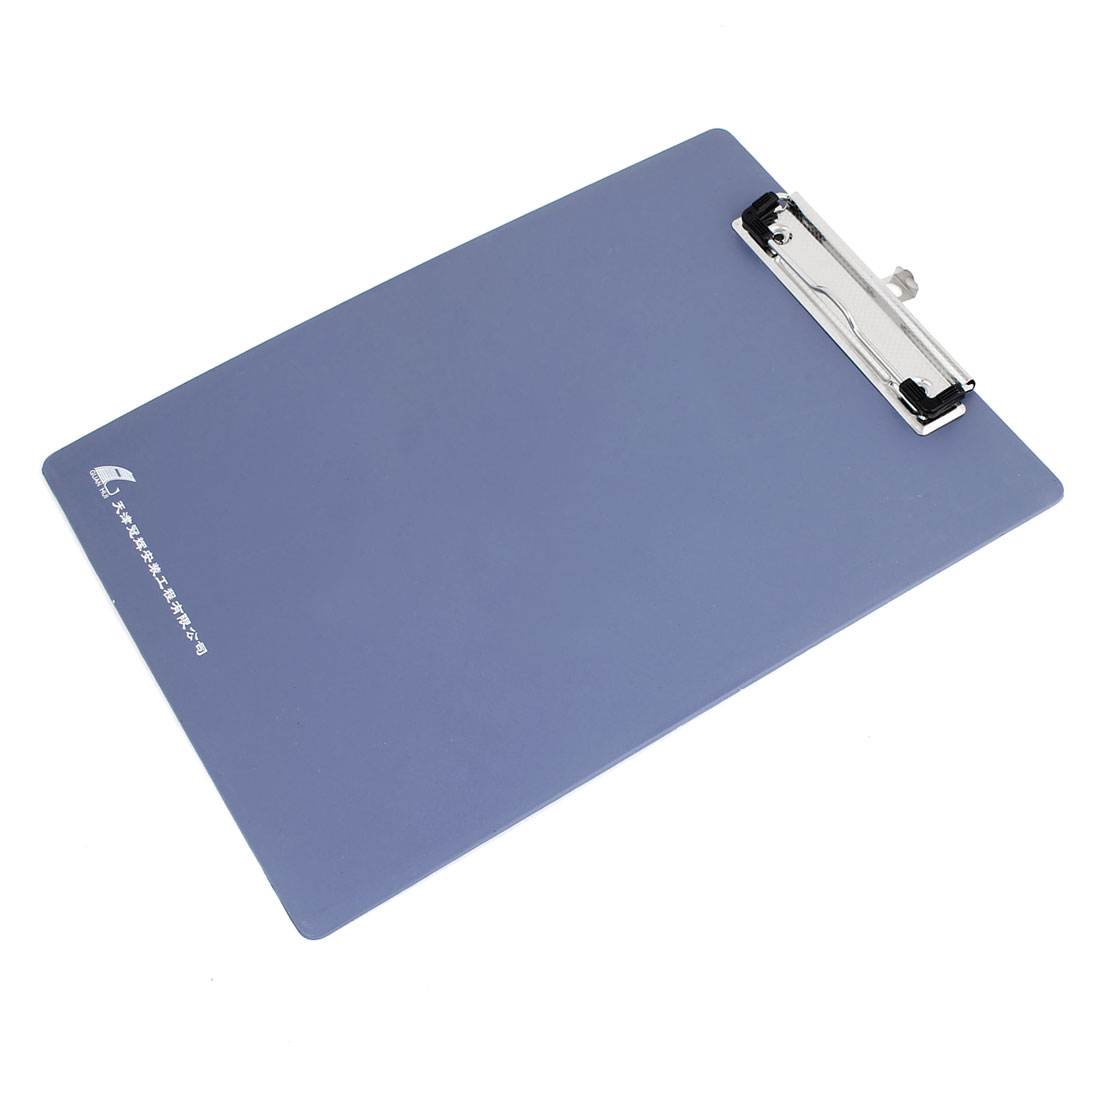 Yale Blue Plastic Metal Clip Board Office A4 File Notebook Clipboard